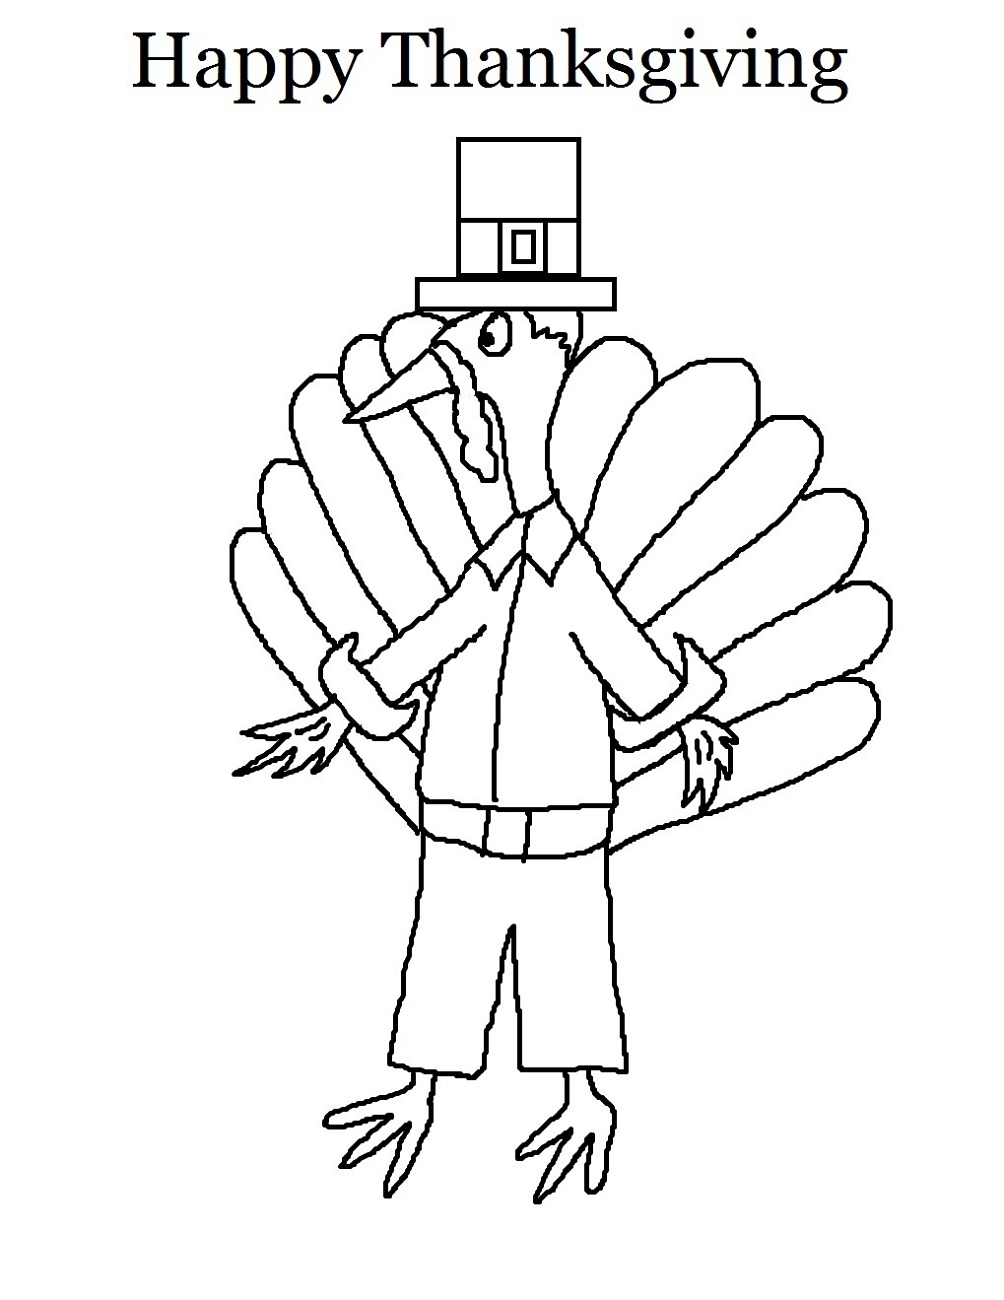 Printable Thanksgiving Coloring Pages Turkey